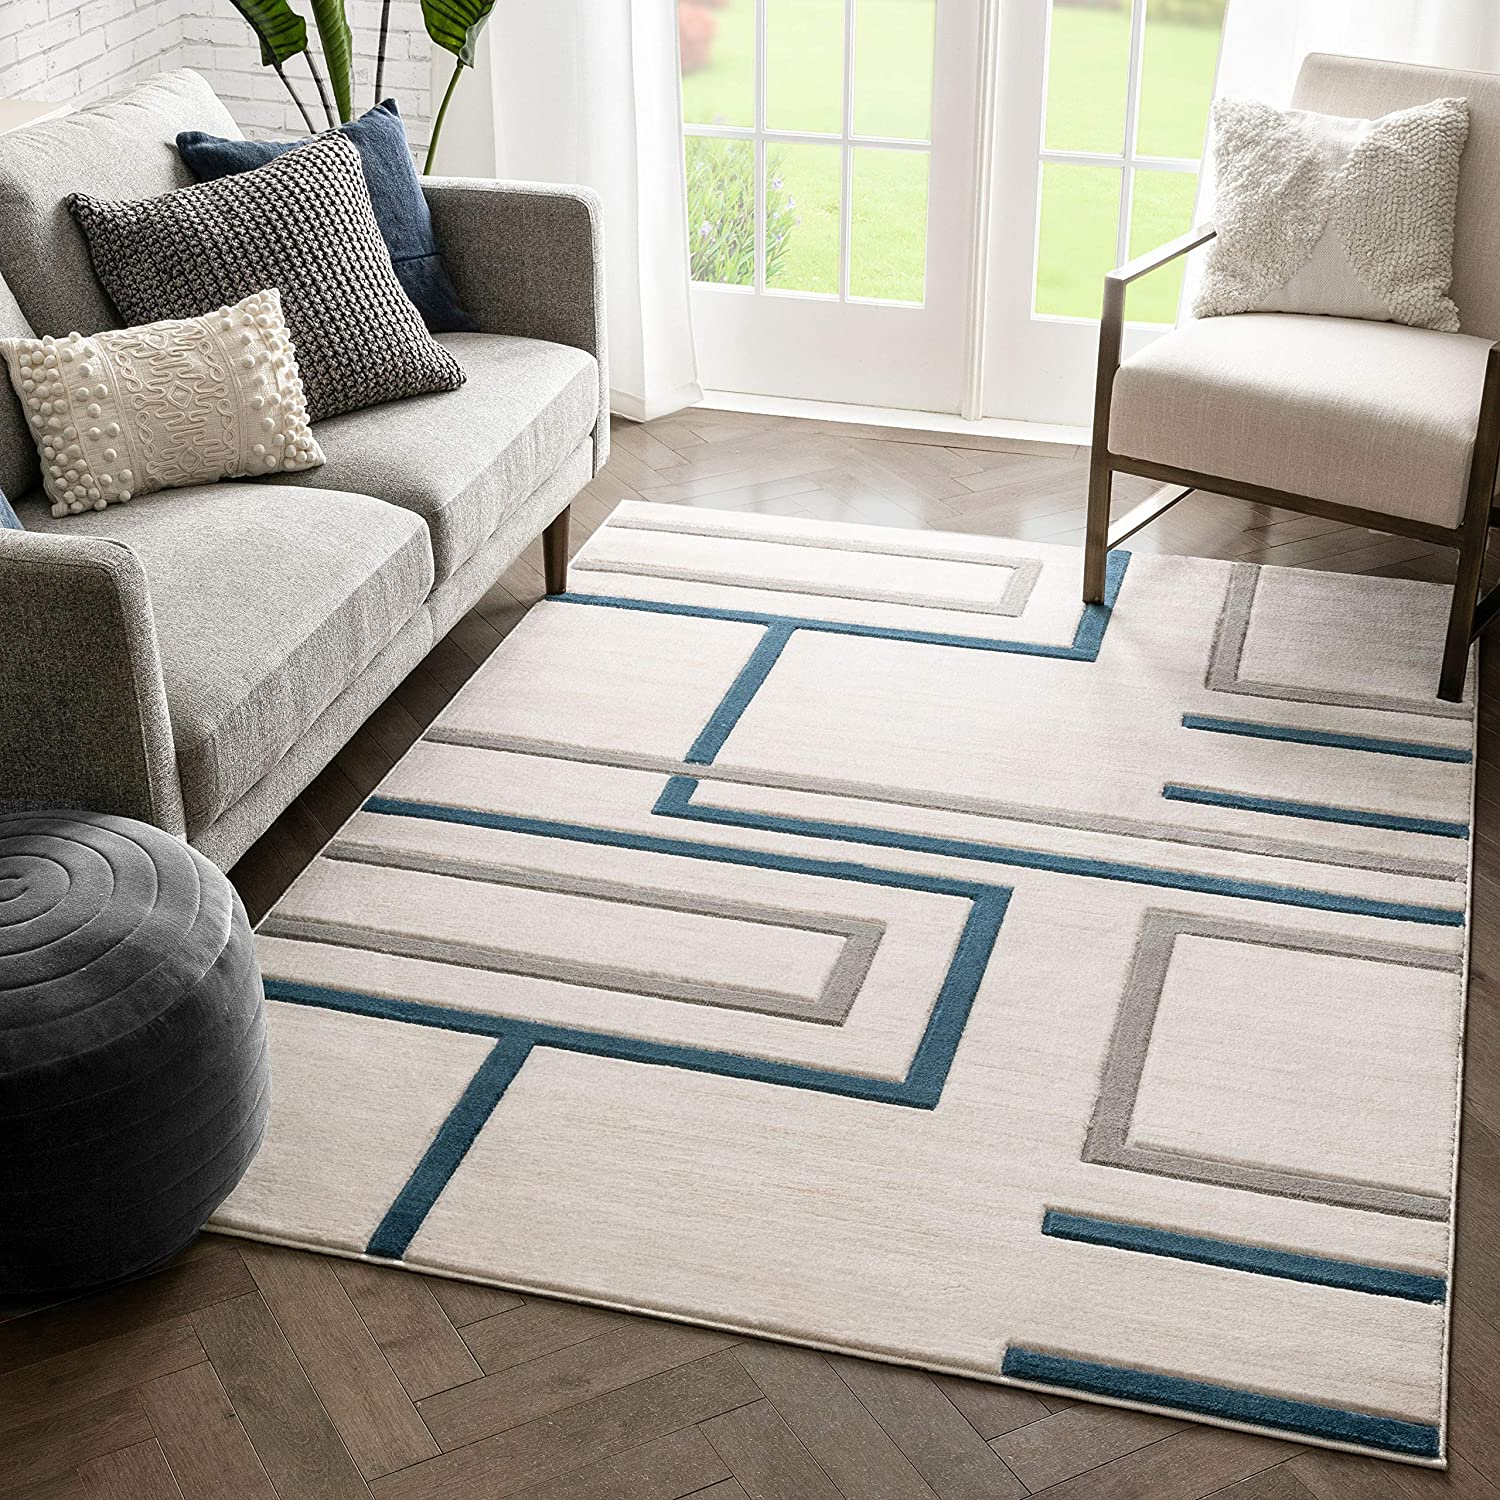 Amazon Com Well Woven Fiora Blue Modern Geometric Stripes Boxes Pattern Area Rug 5x7 5 3 X 7 3 Home Kitchen